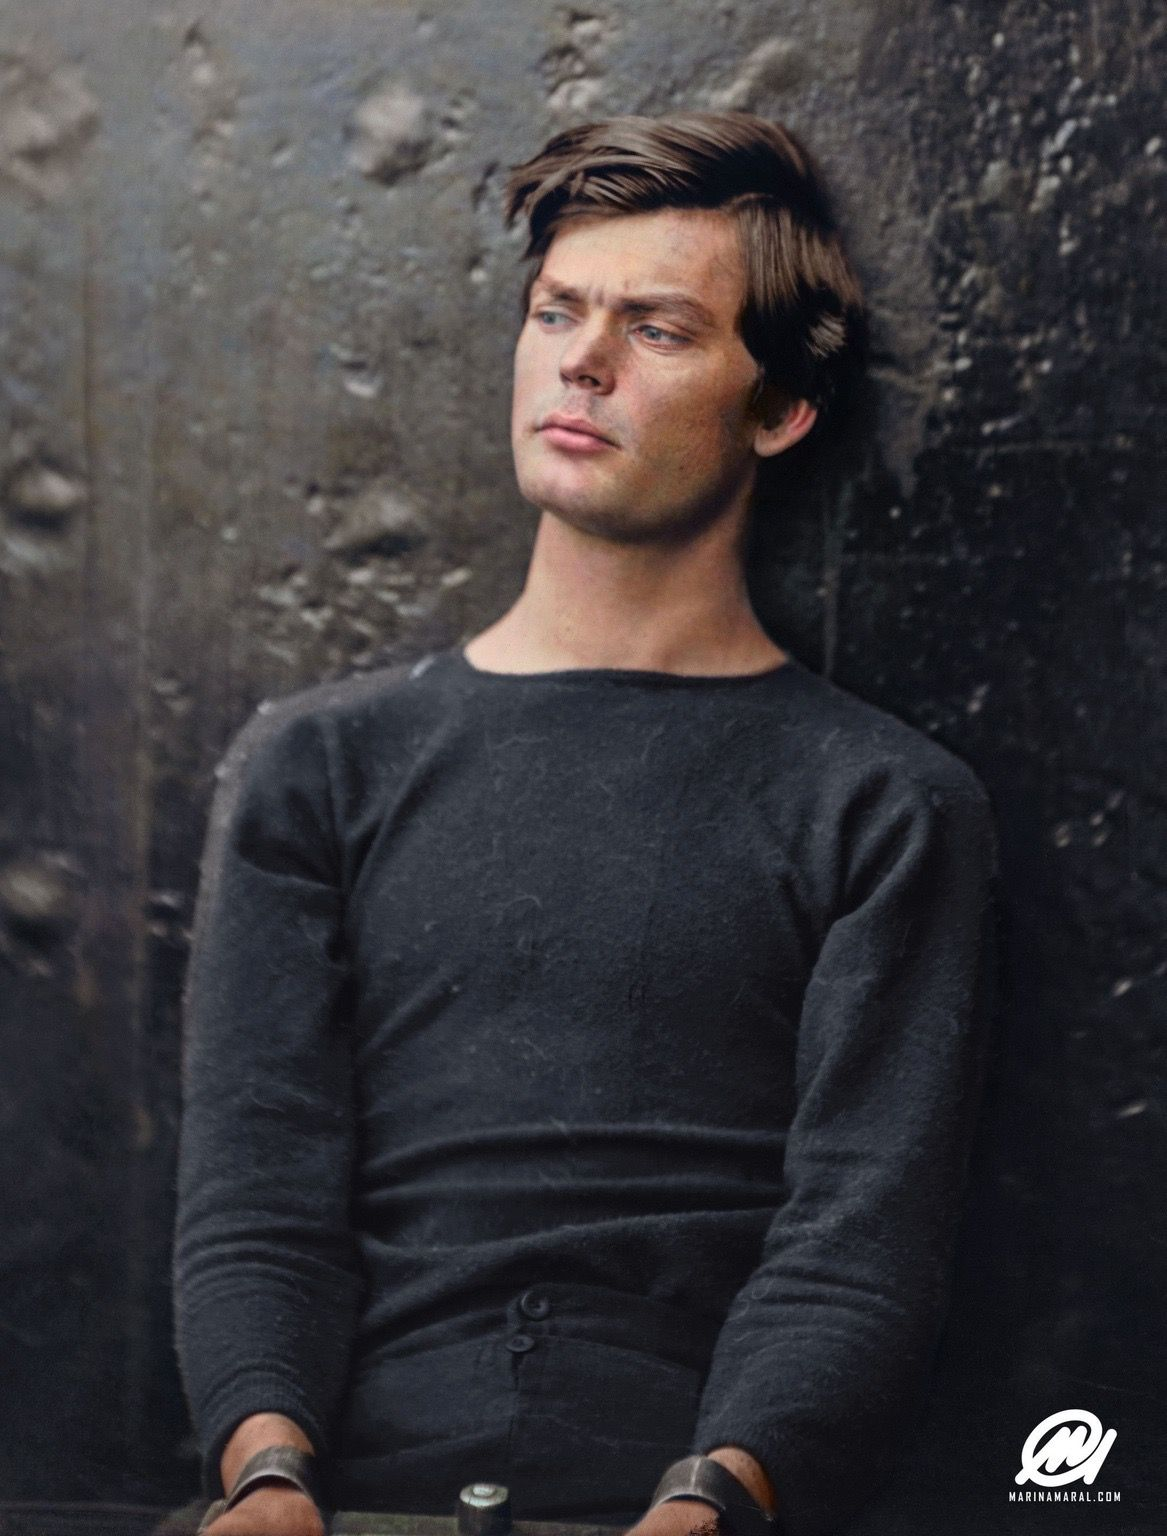 Abraham Lincoln Assassination Conspirator Lewis Powell in Custody, April 1865. (Colorised by /u/marinamaral)